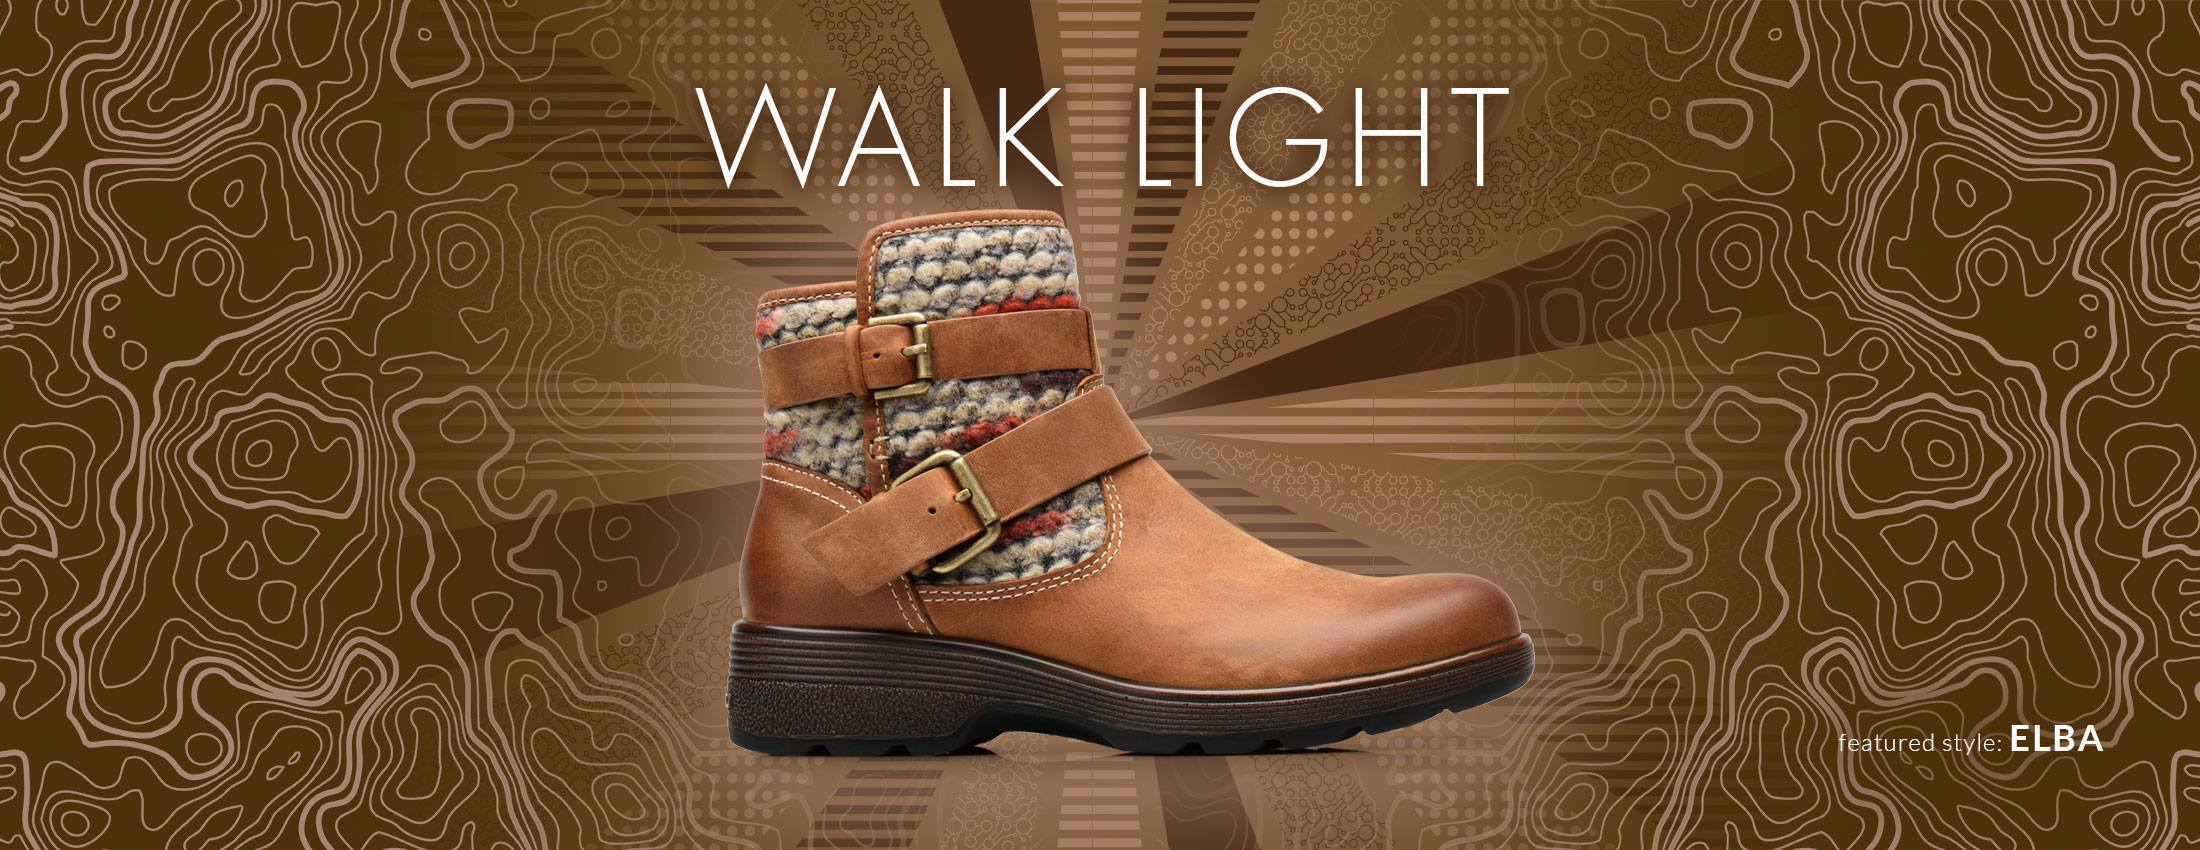 Walk Light. Featured style: Elba boot, shown in almond tan